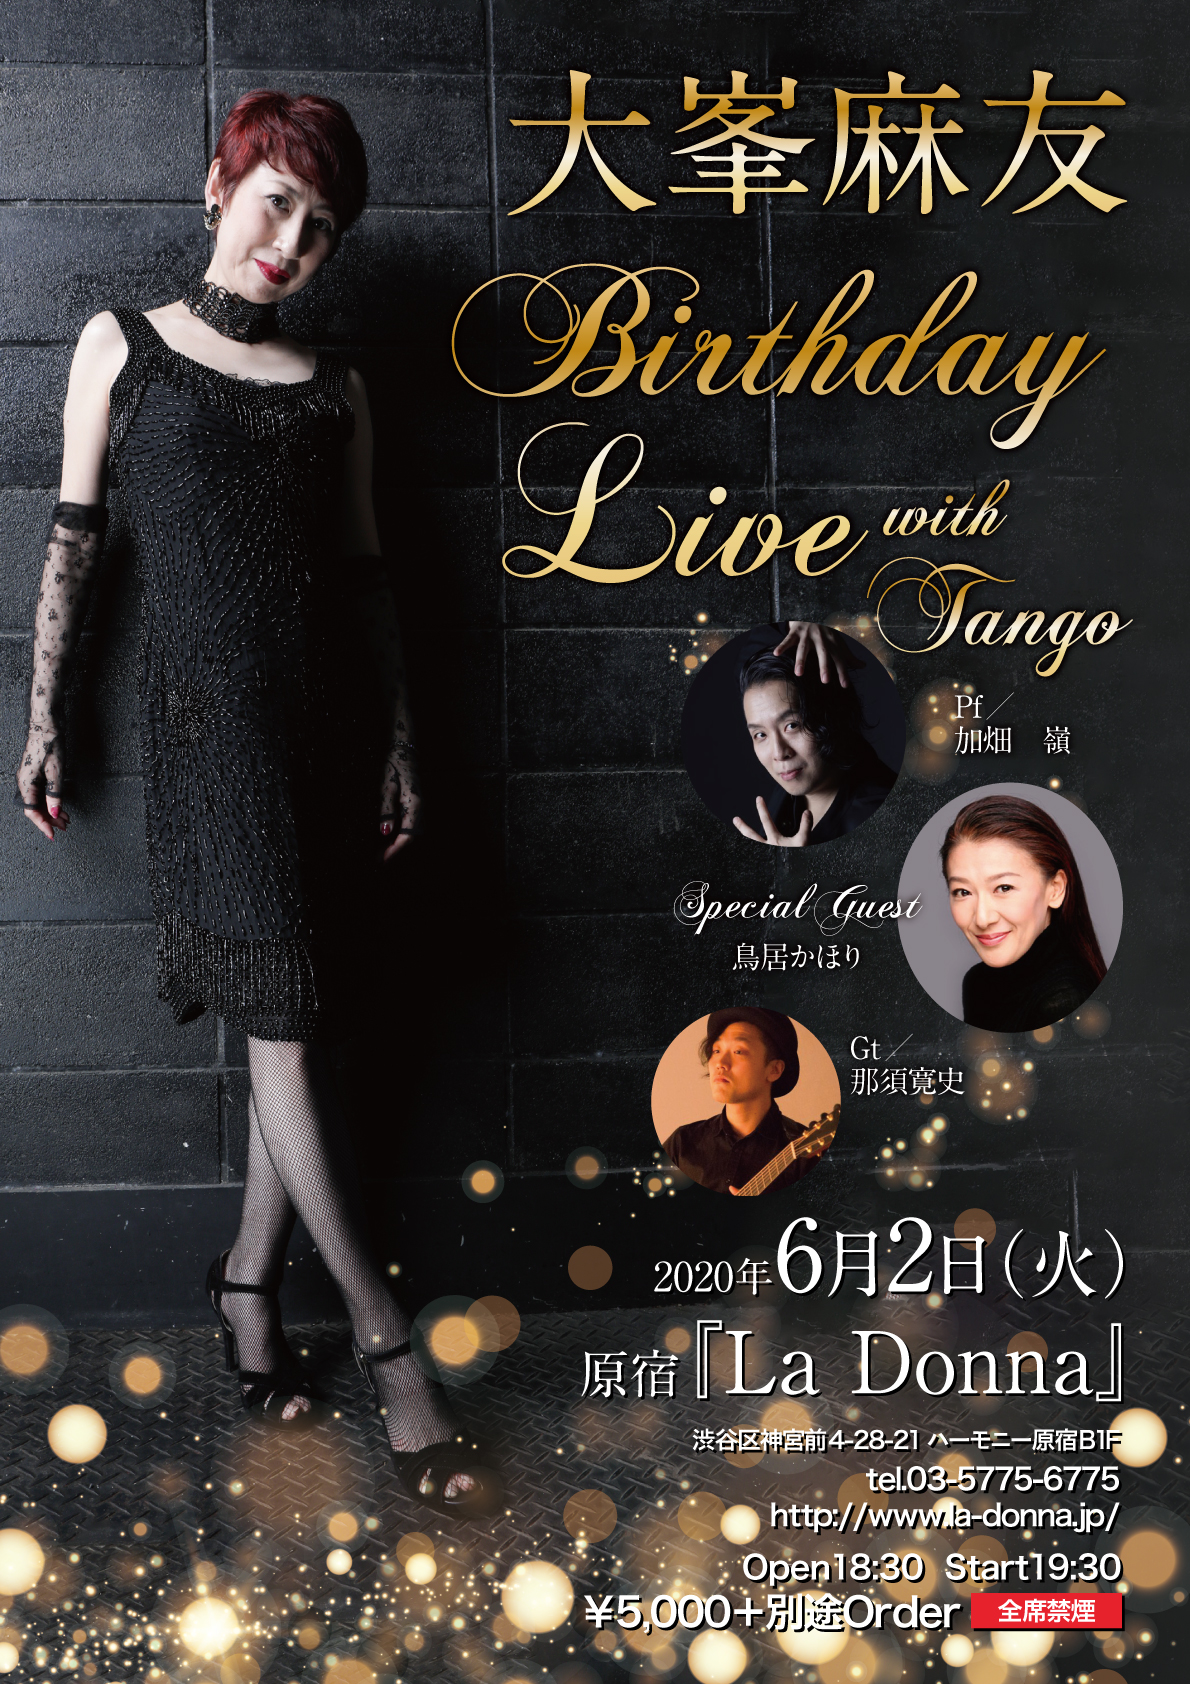 大峯麻友 Birthday Live with Tango